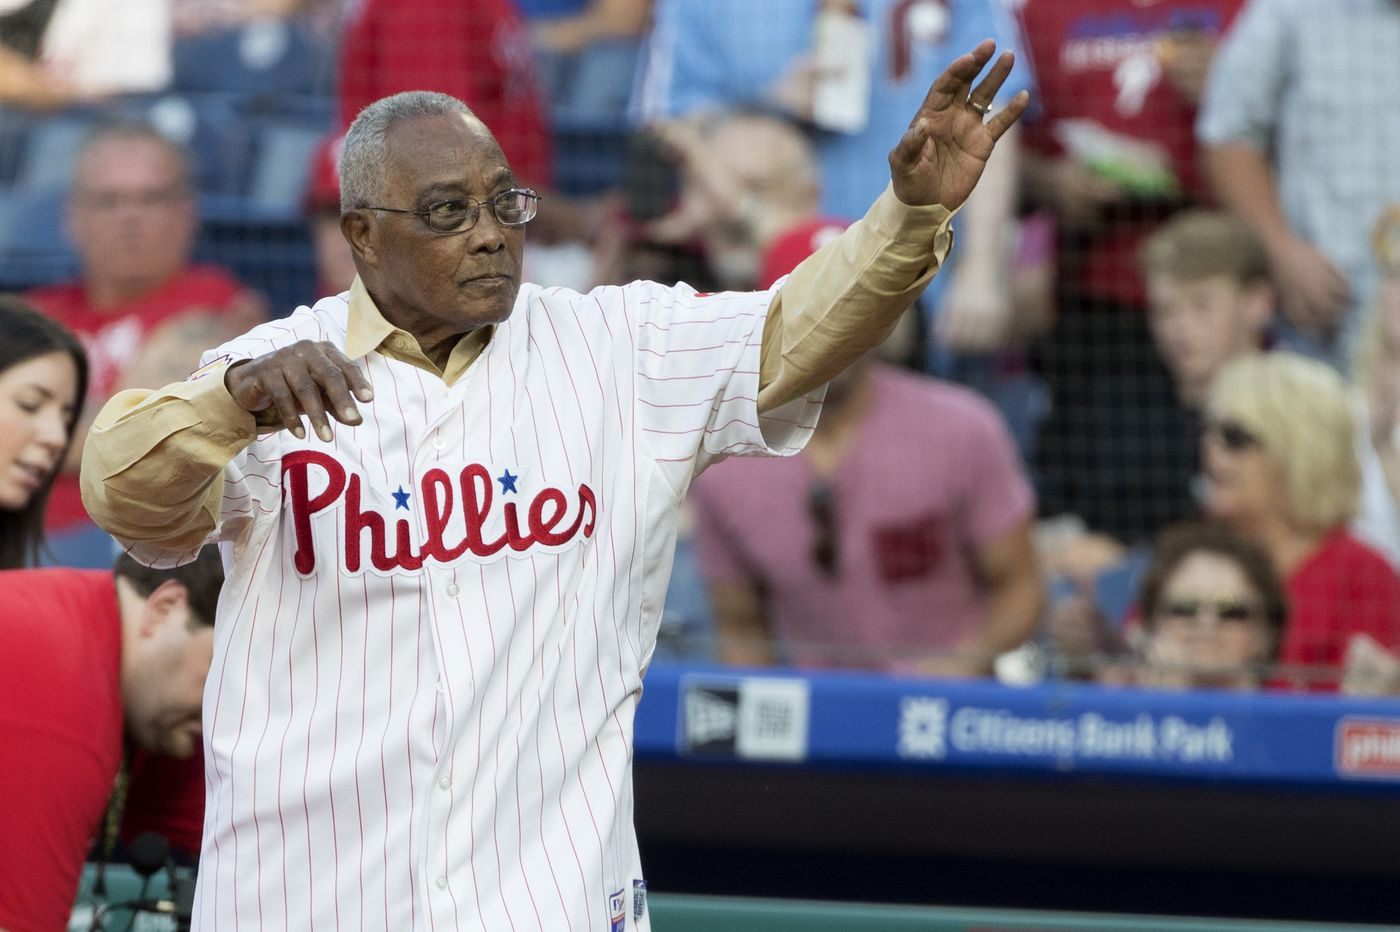 Phillies great Tony Taylor suffers stroke after leaving Citizens Bank Park celebration